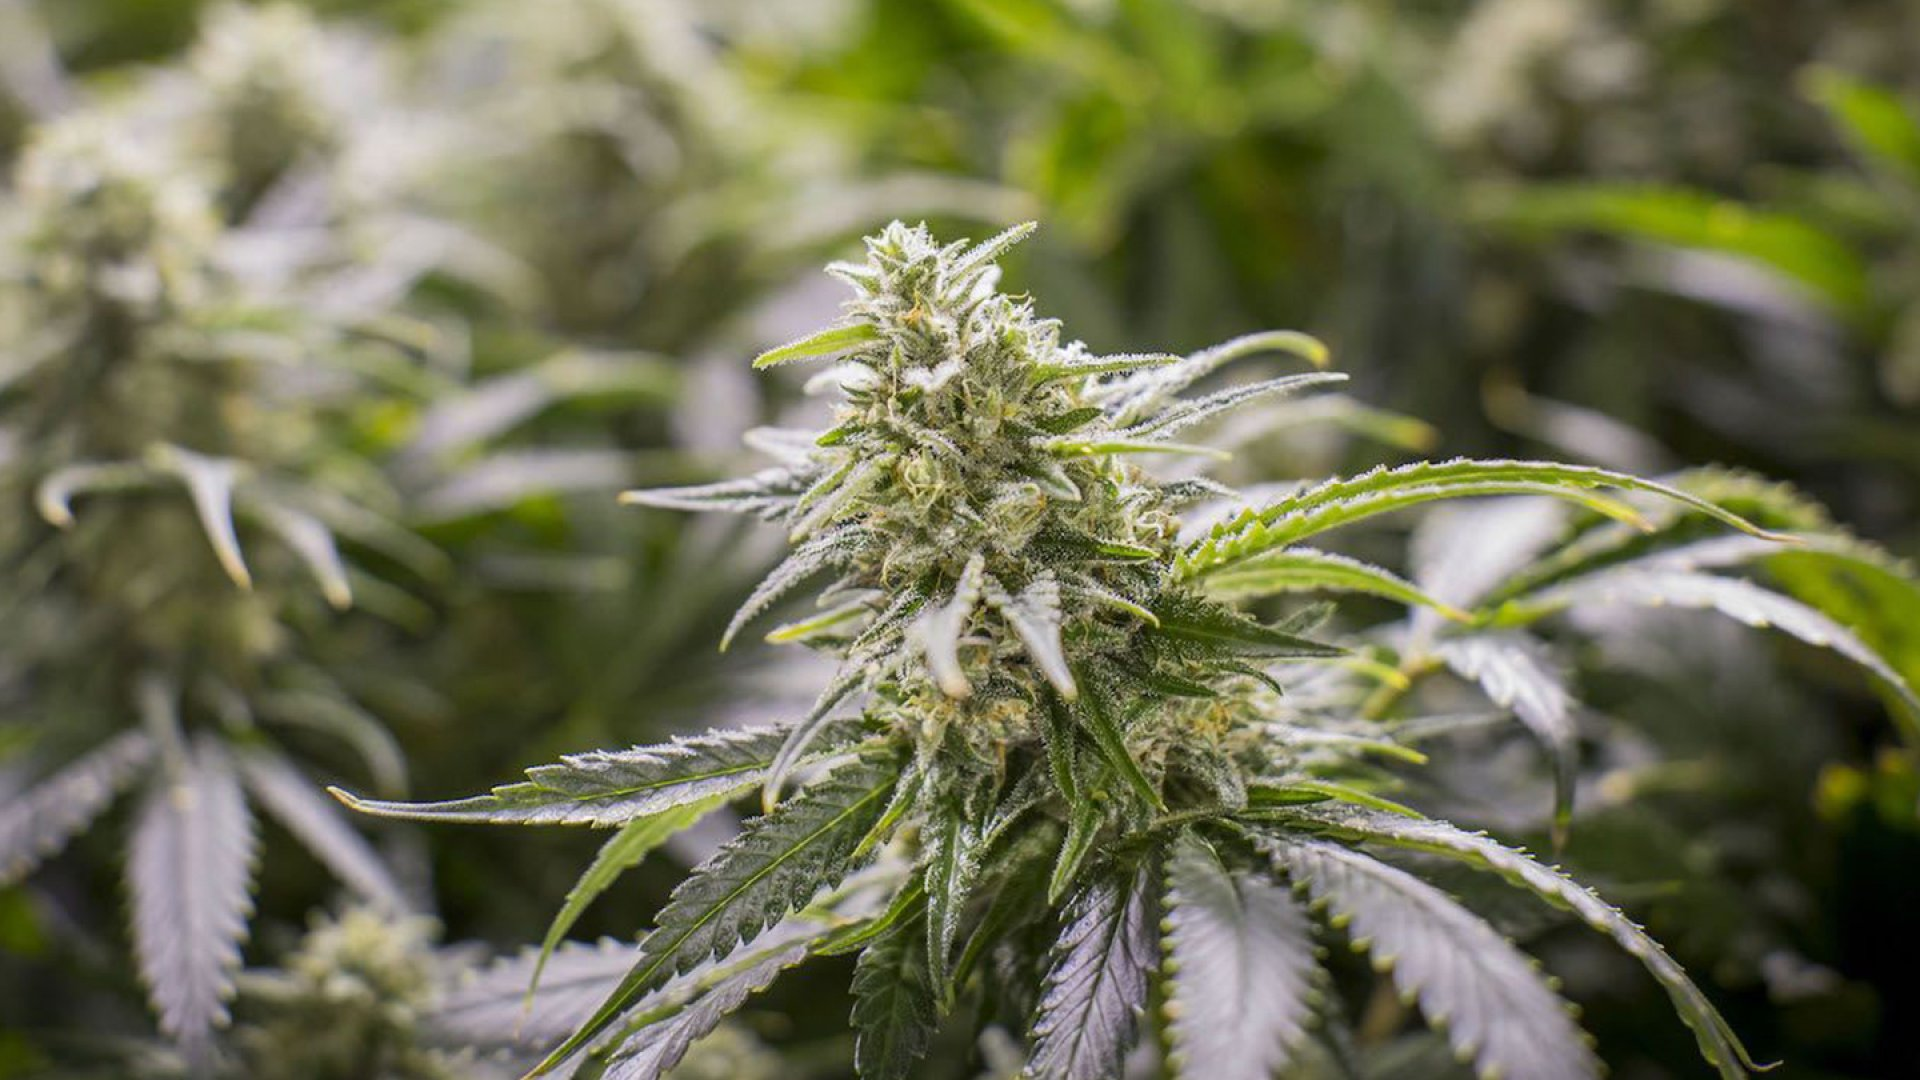 A cannabis plant in Medicine Man's 40,000-square-foot warehouse in Denver. The dispensary's grow operation produced 7,000 pounds of pot in 2014 and generated $8 million in revenue.